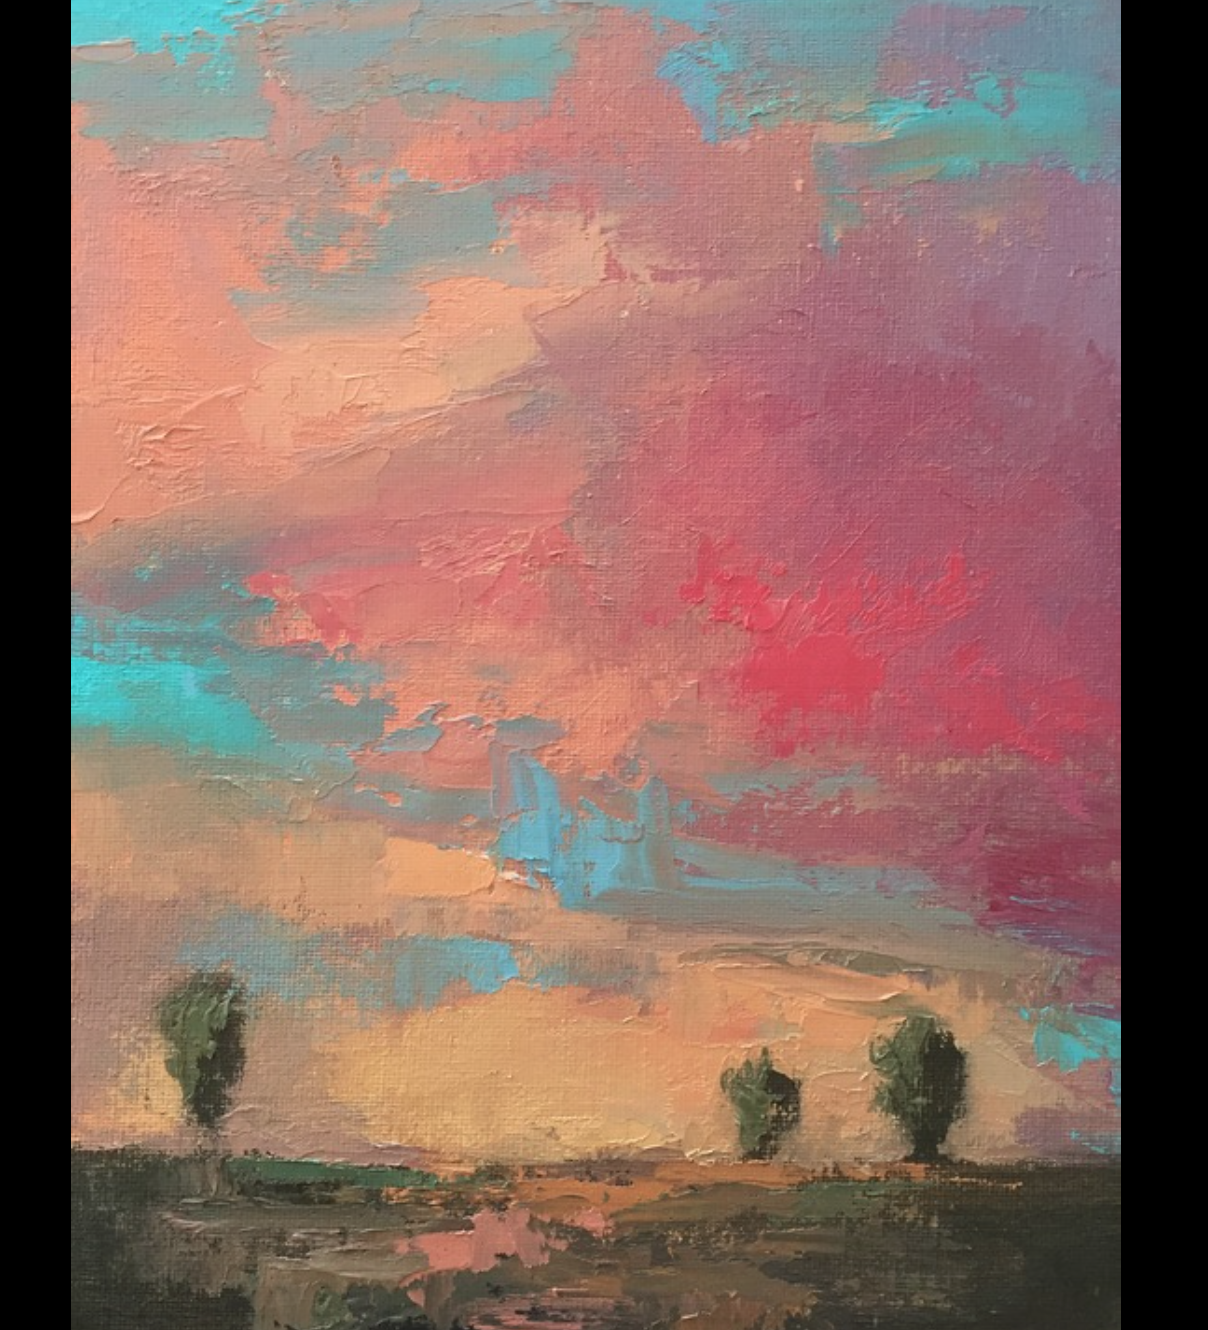 Mark Johnson - http://www.markjohnsonart.comAtmospheric landscapes and skyscapes in oil on canvas, using luminosity, color, and light to draw the viewer into a dreamy world of memories and imagination.